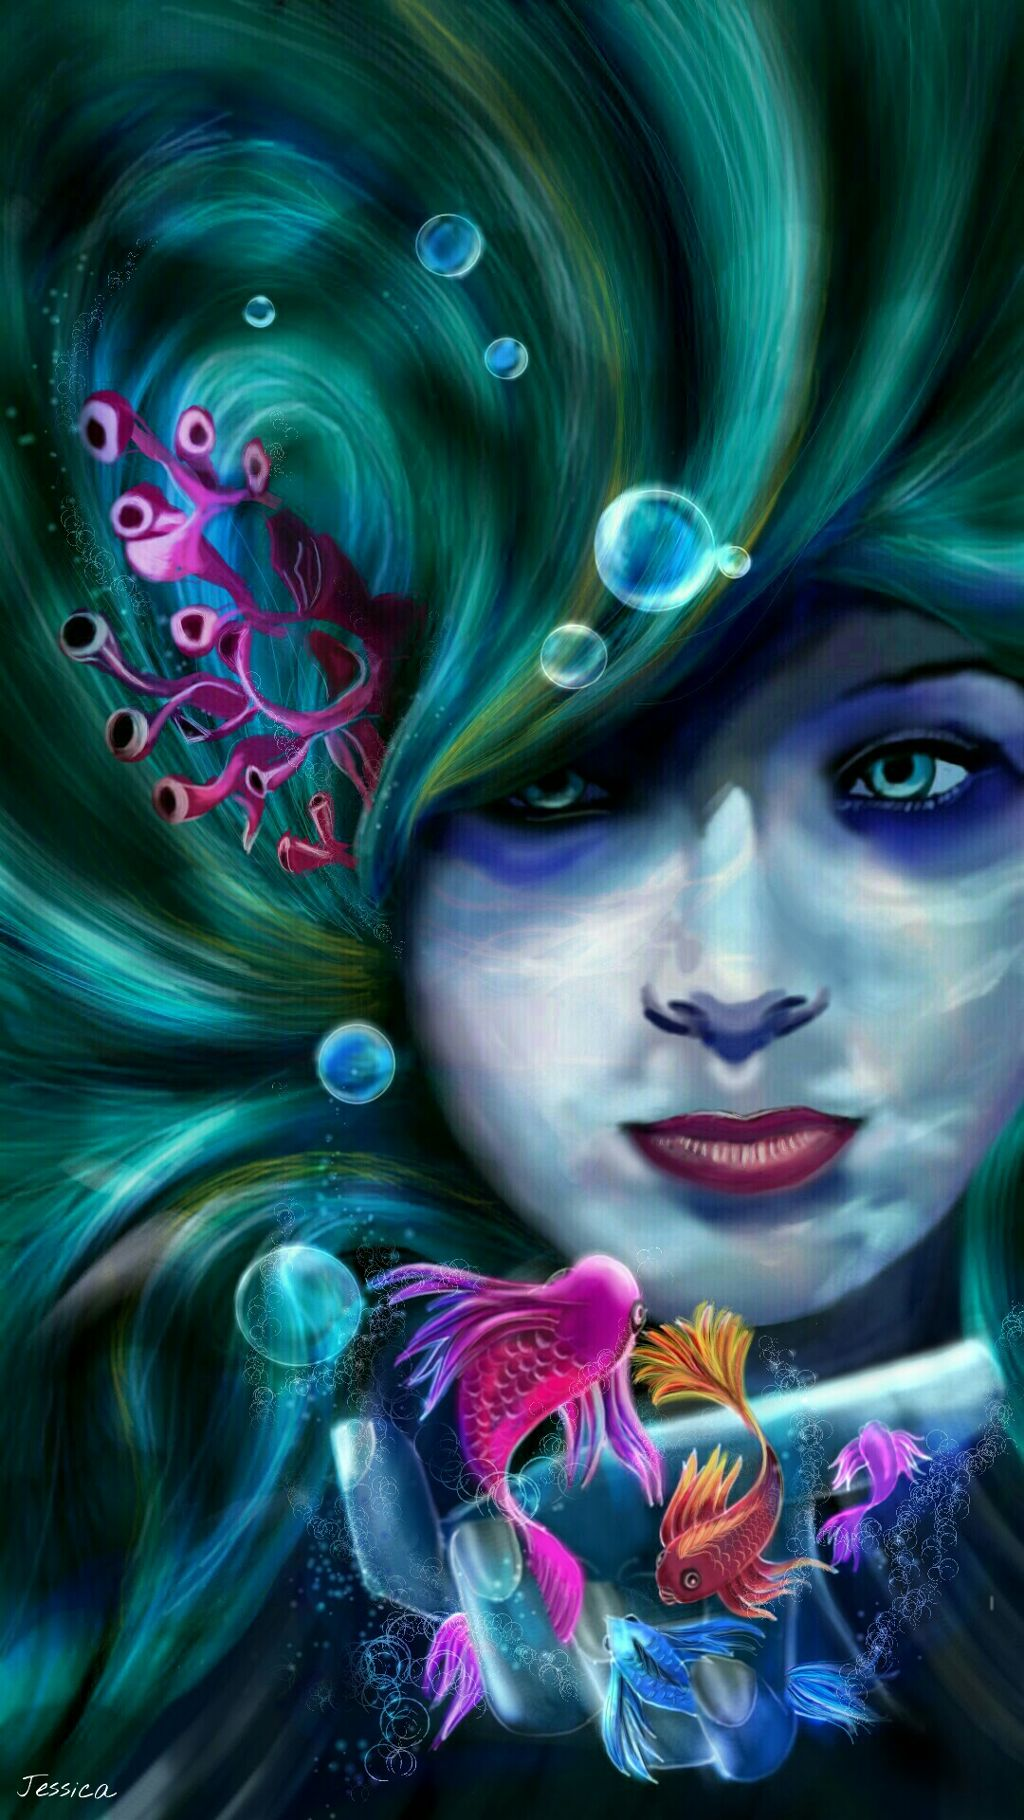 #wdpshowmethesea my concept painting right out of my imagination for this contest, no web reference used, painted using PicsArt drawing tools...an exhausting effort of 14 hours..How would you feel if you encounter an underwater sea beauty!!! if you like it repost it my friends! #draw #drawing #painting #mypainting